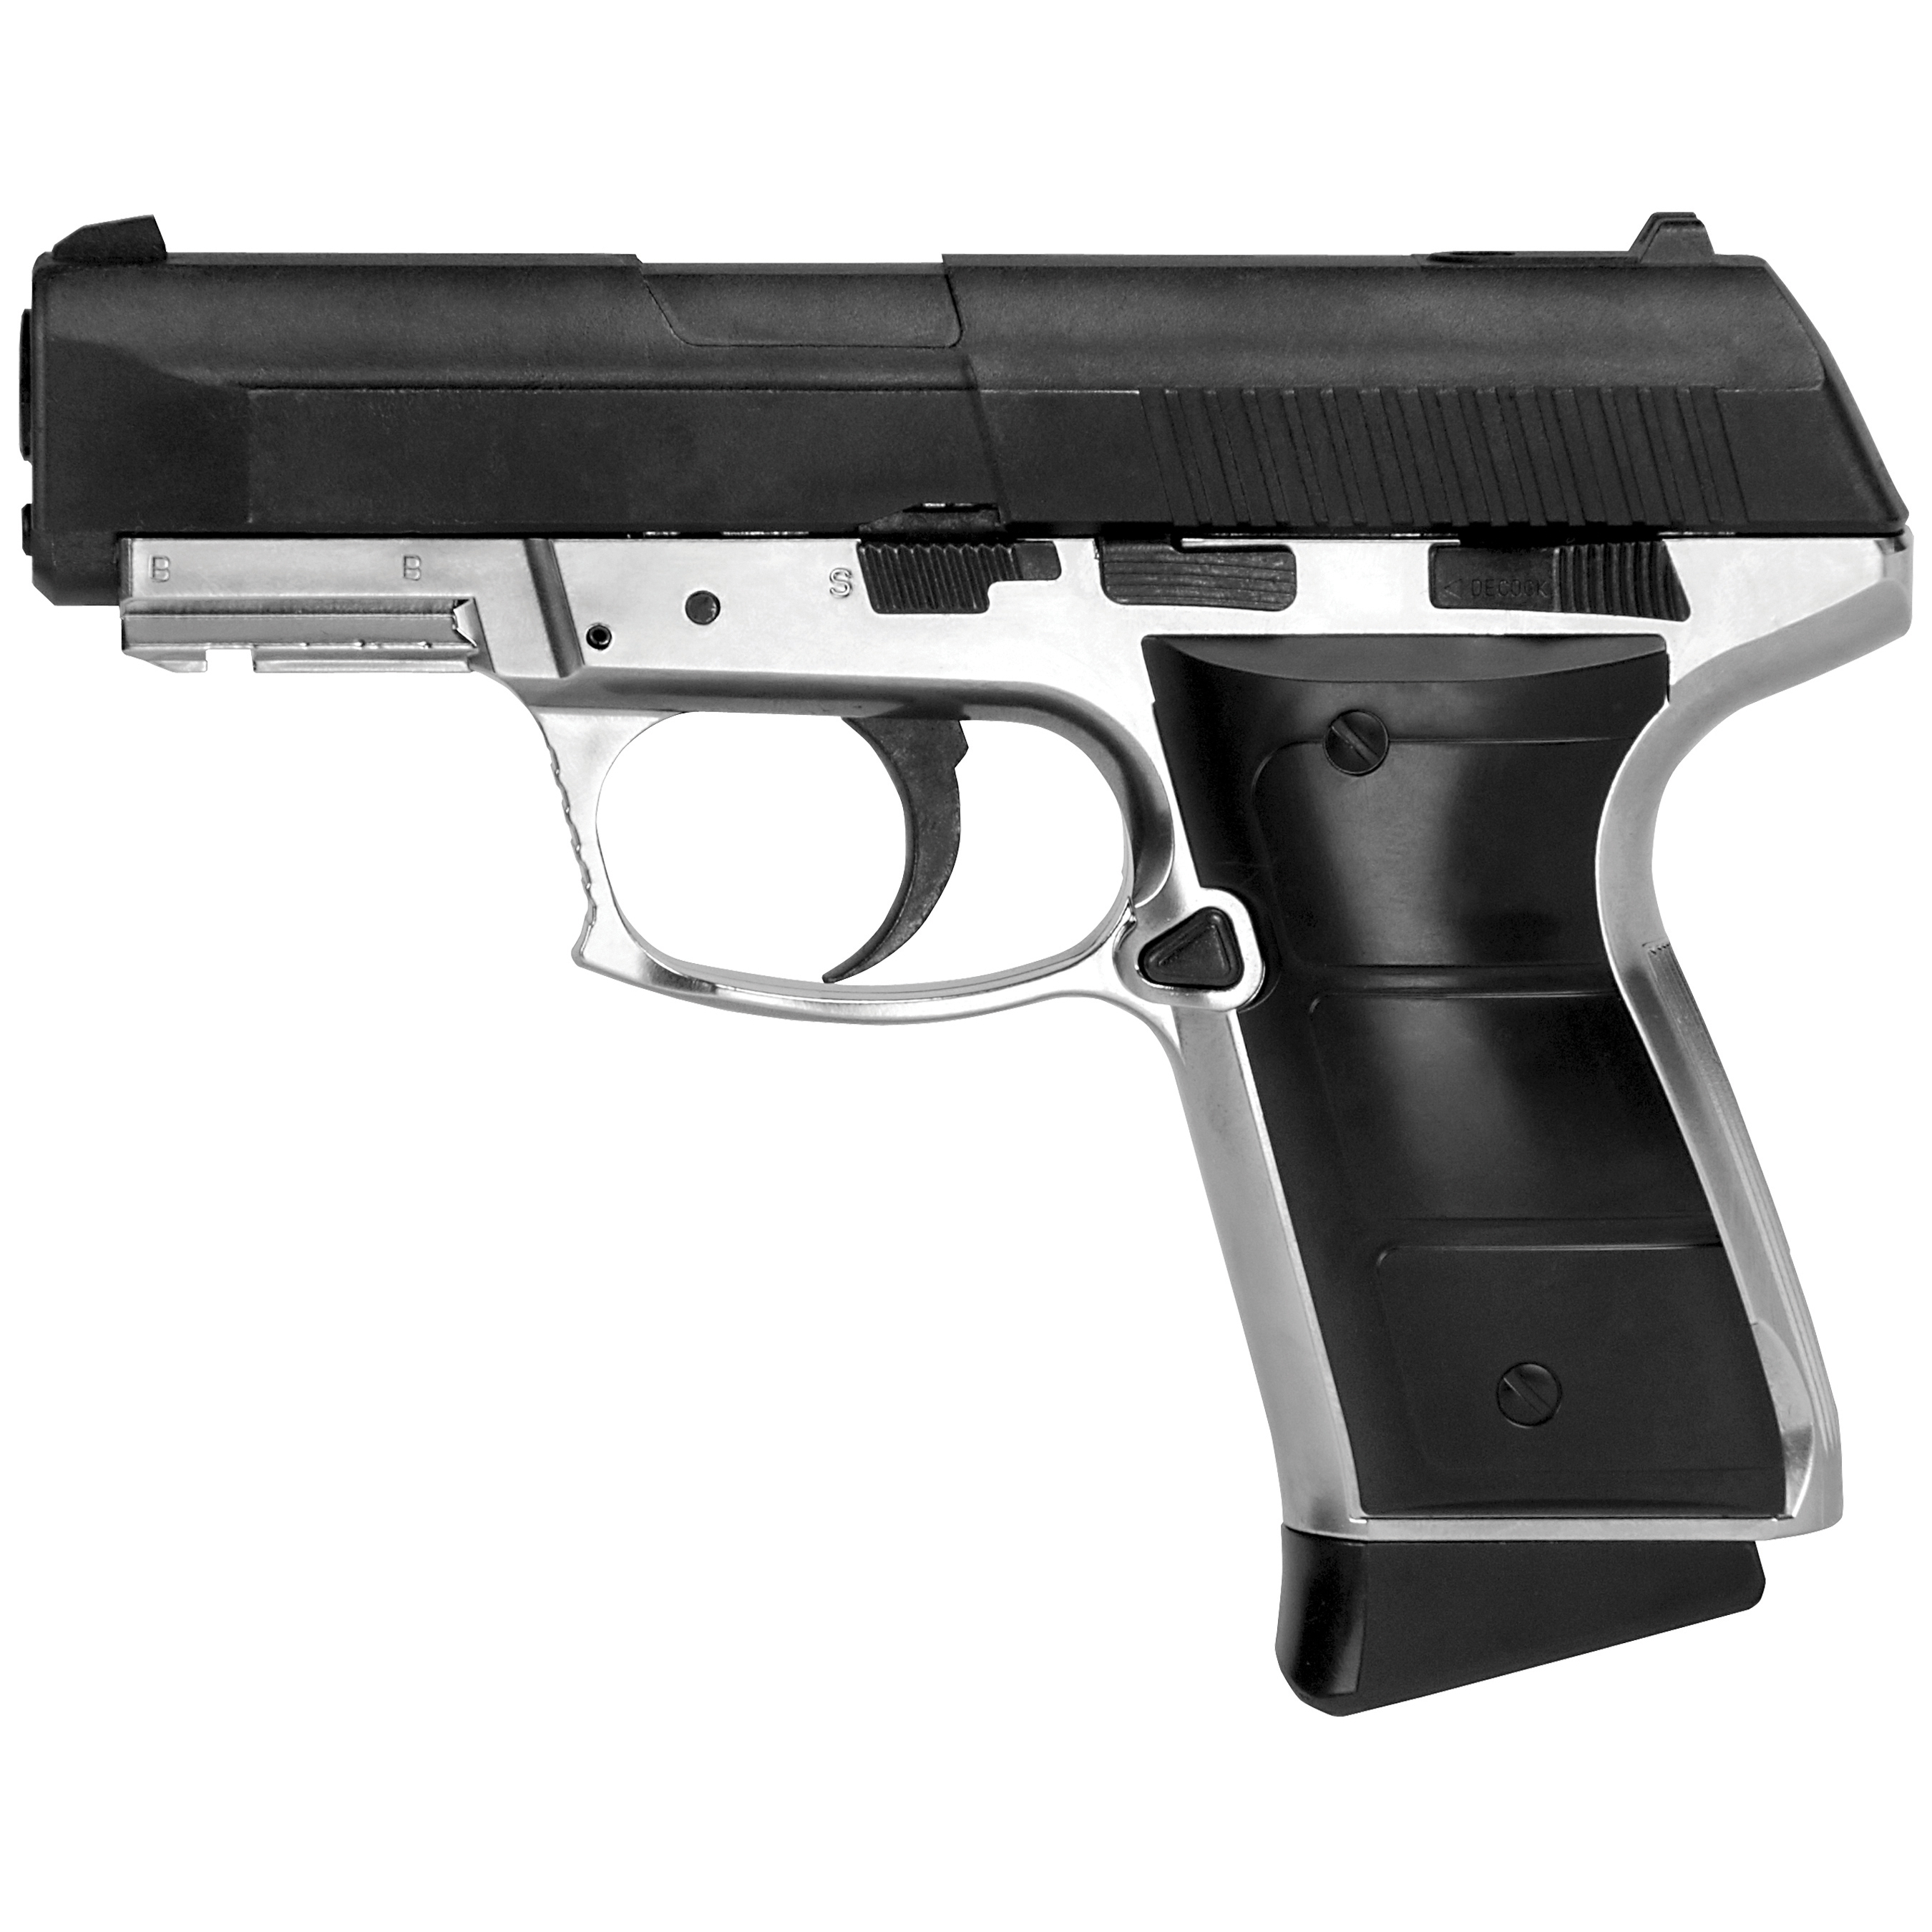 Daisy Powerline 5501 CO2 Blowback Air Pistol by Daisy